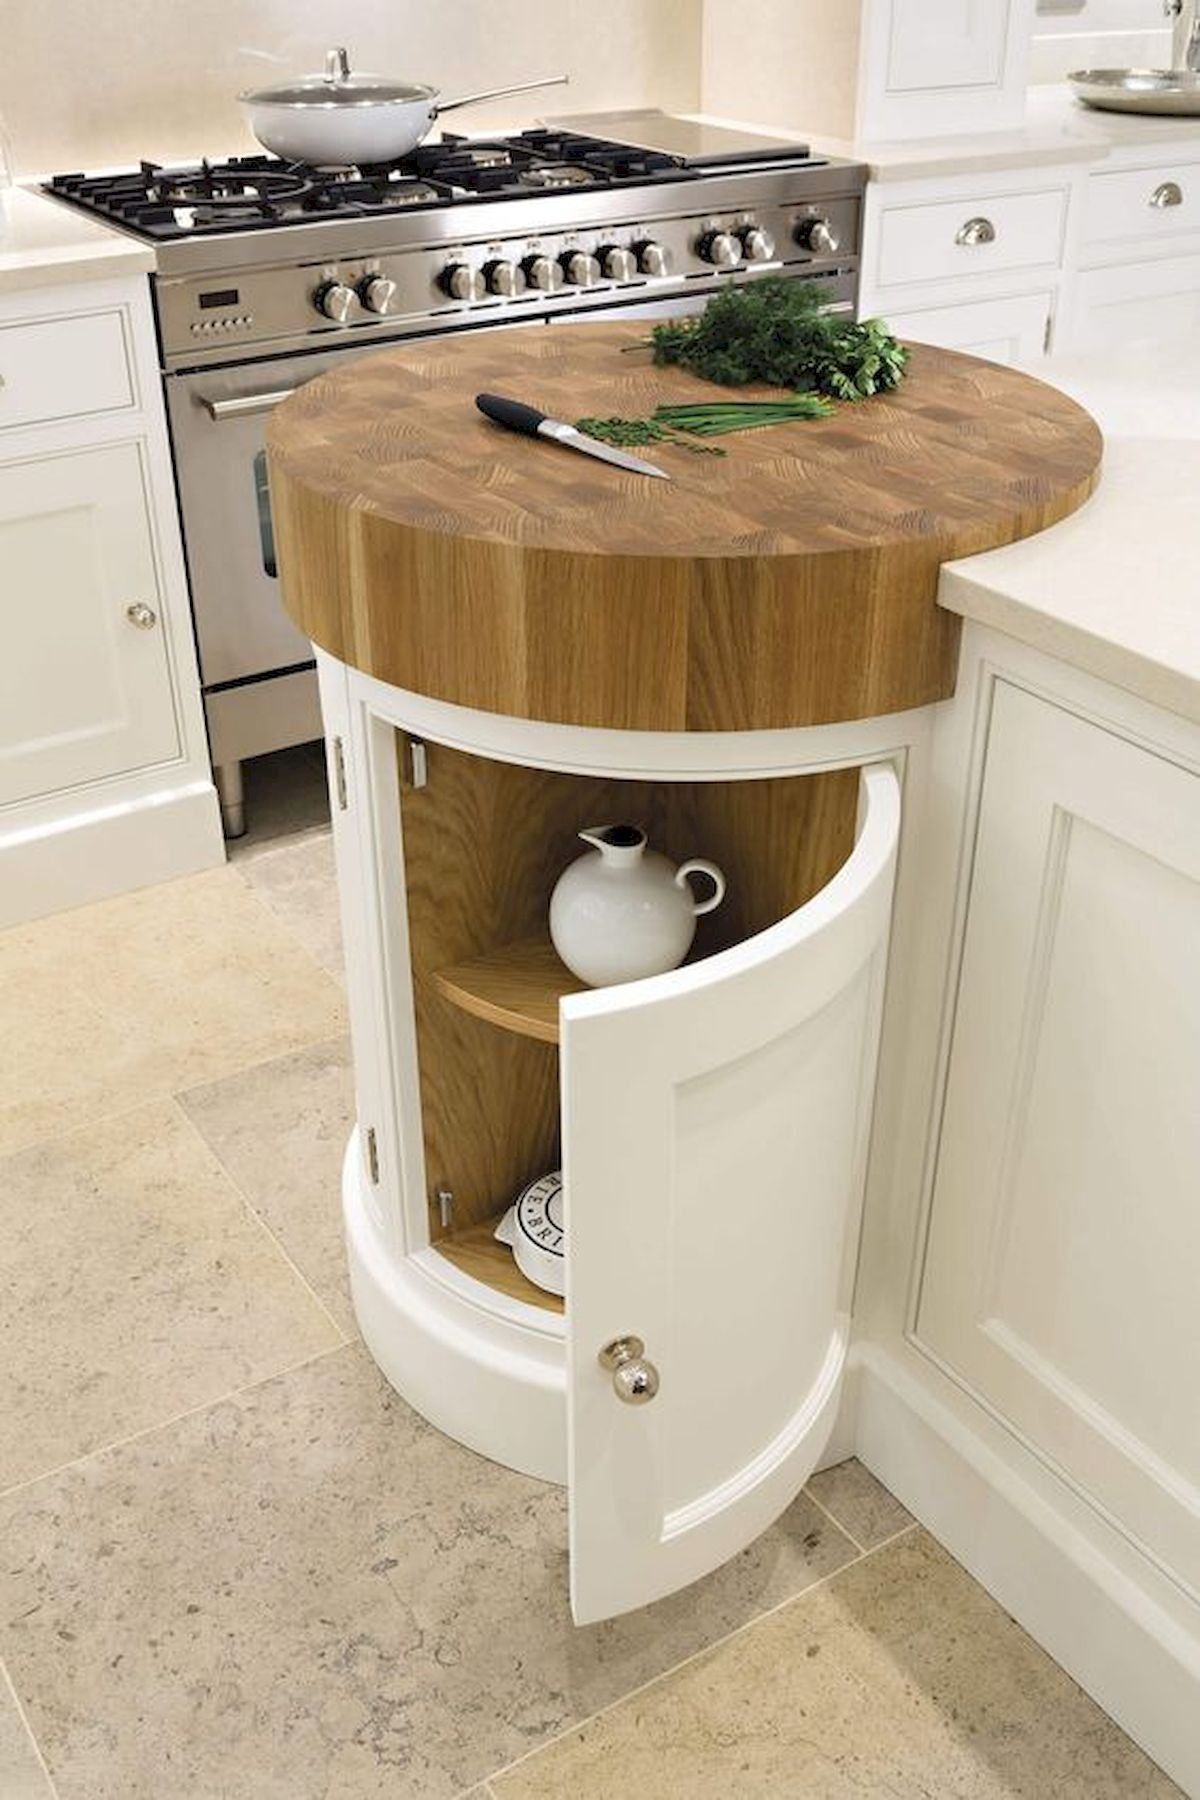 Cucina Piccola Angolare Ikea 80 lovely diy projects furniture kitchen storage design